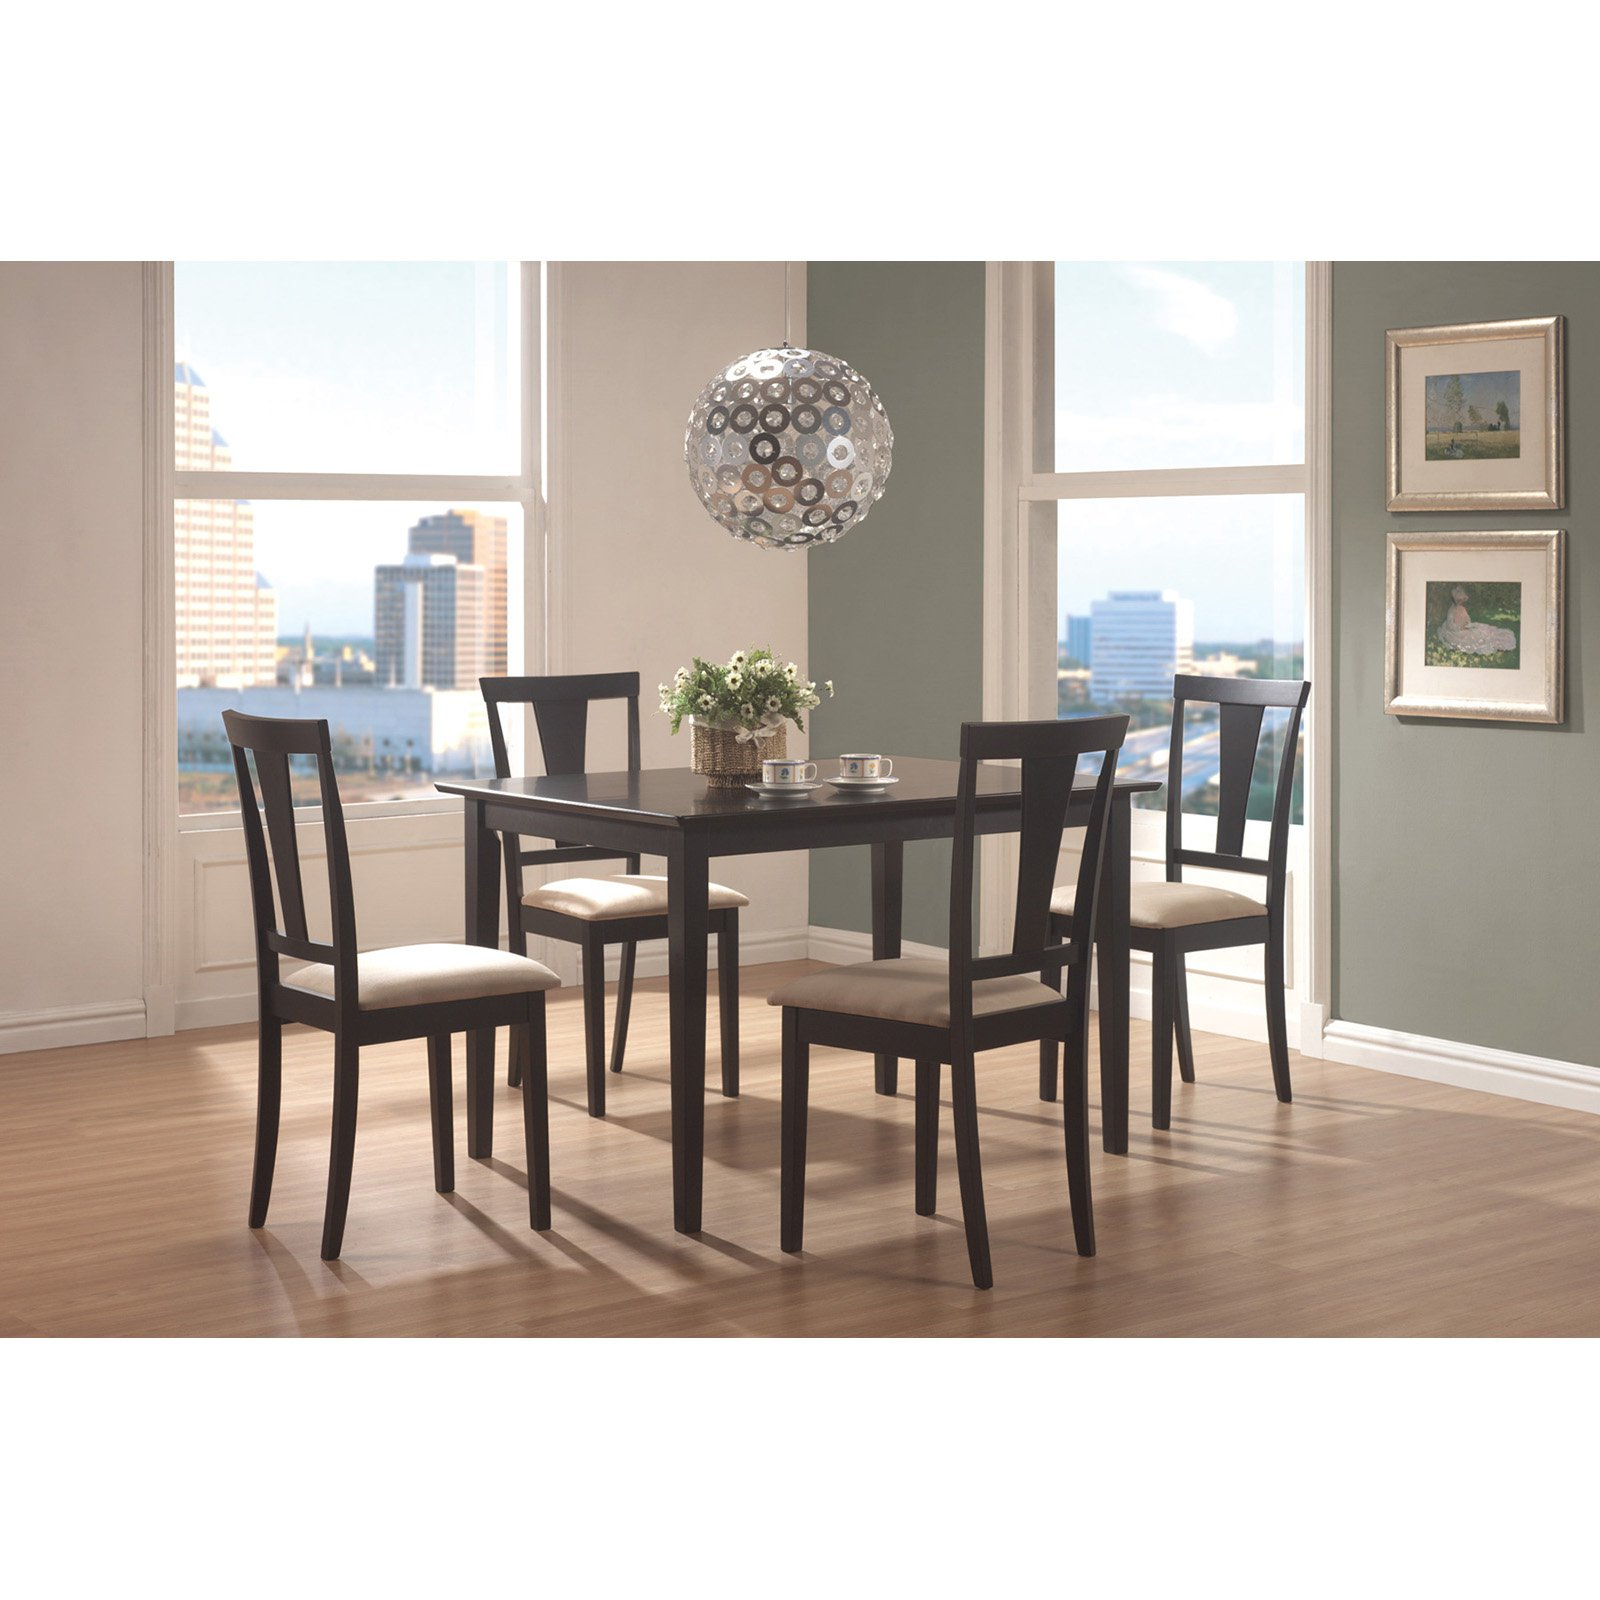 Coaster Furniture Geary 5 Piece Dining Table Set